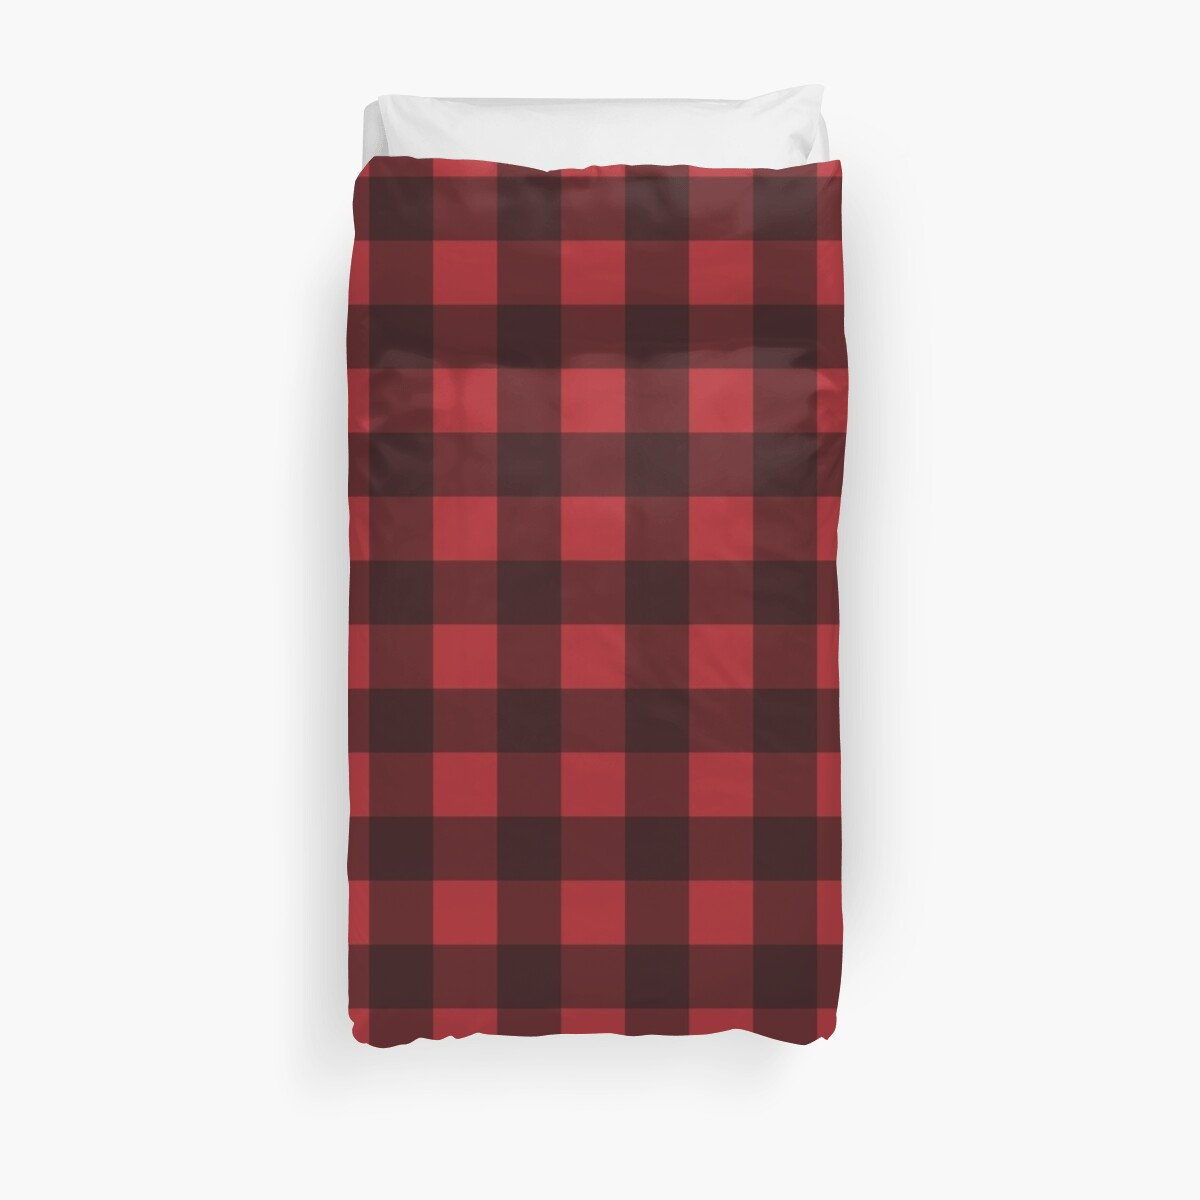 Quot Buffalo Plaid In Lumberjack Red And Black Quot Duvet Covers